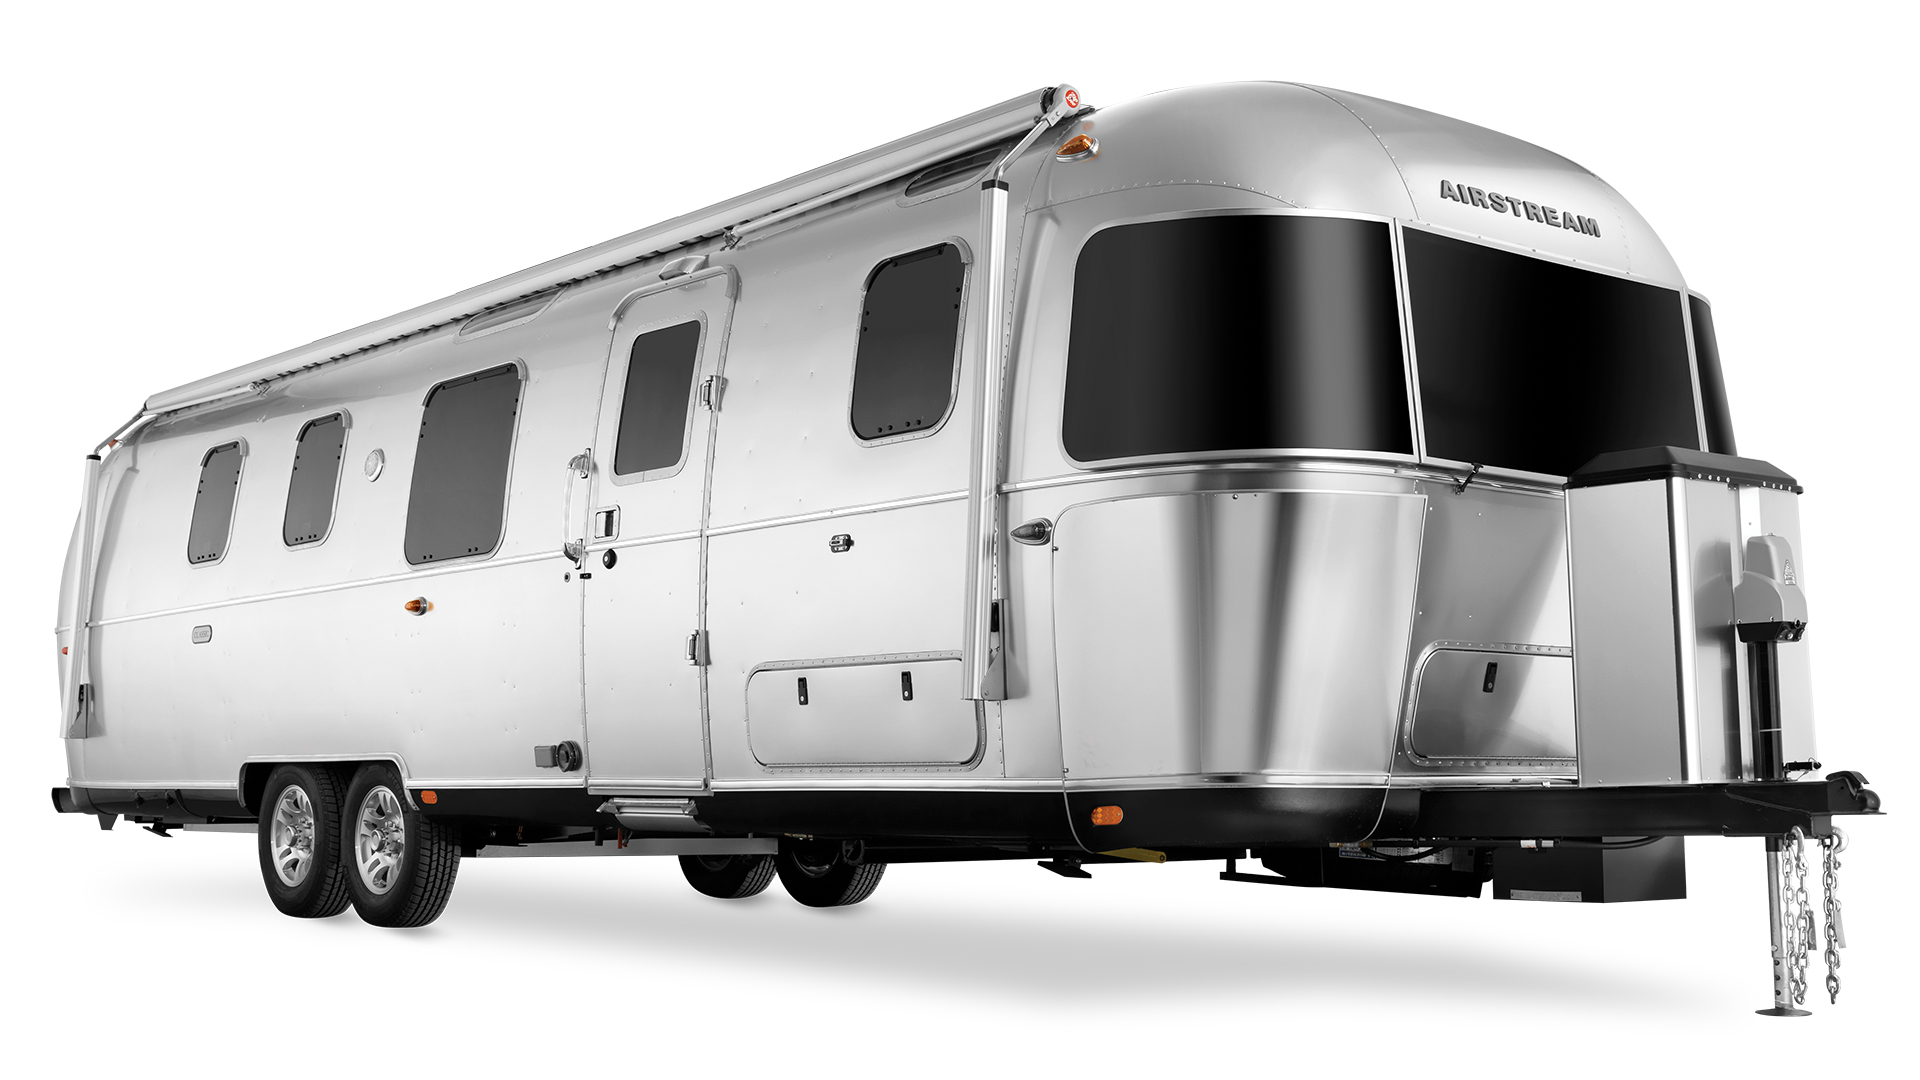 Airstream-Classic-2020-Exterior-Travel-Trailer